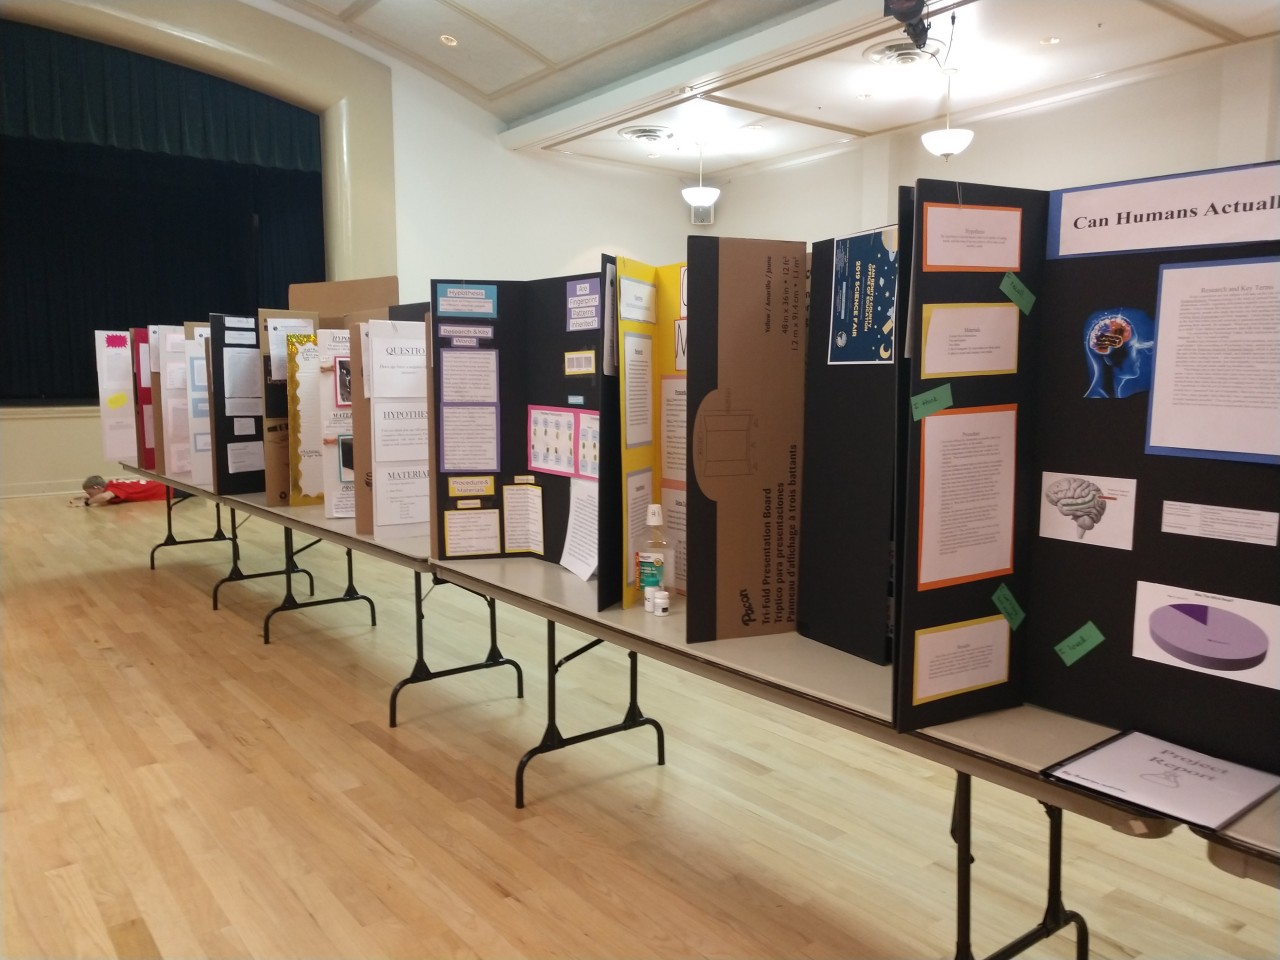 Science projects lined up in the Veterans Memorial Building. Photo by Carmel de Bertaut.